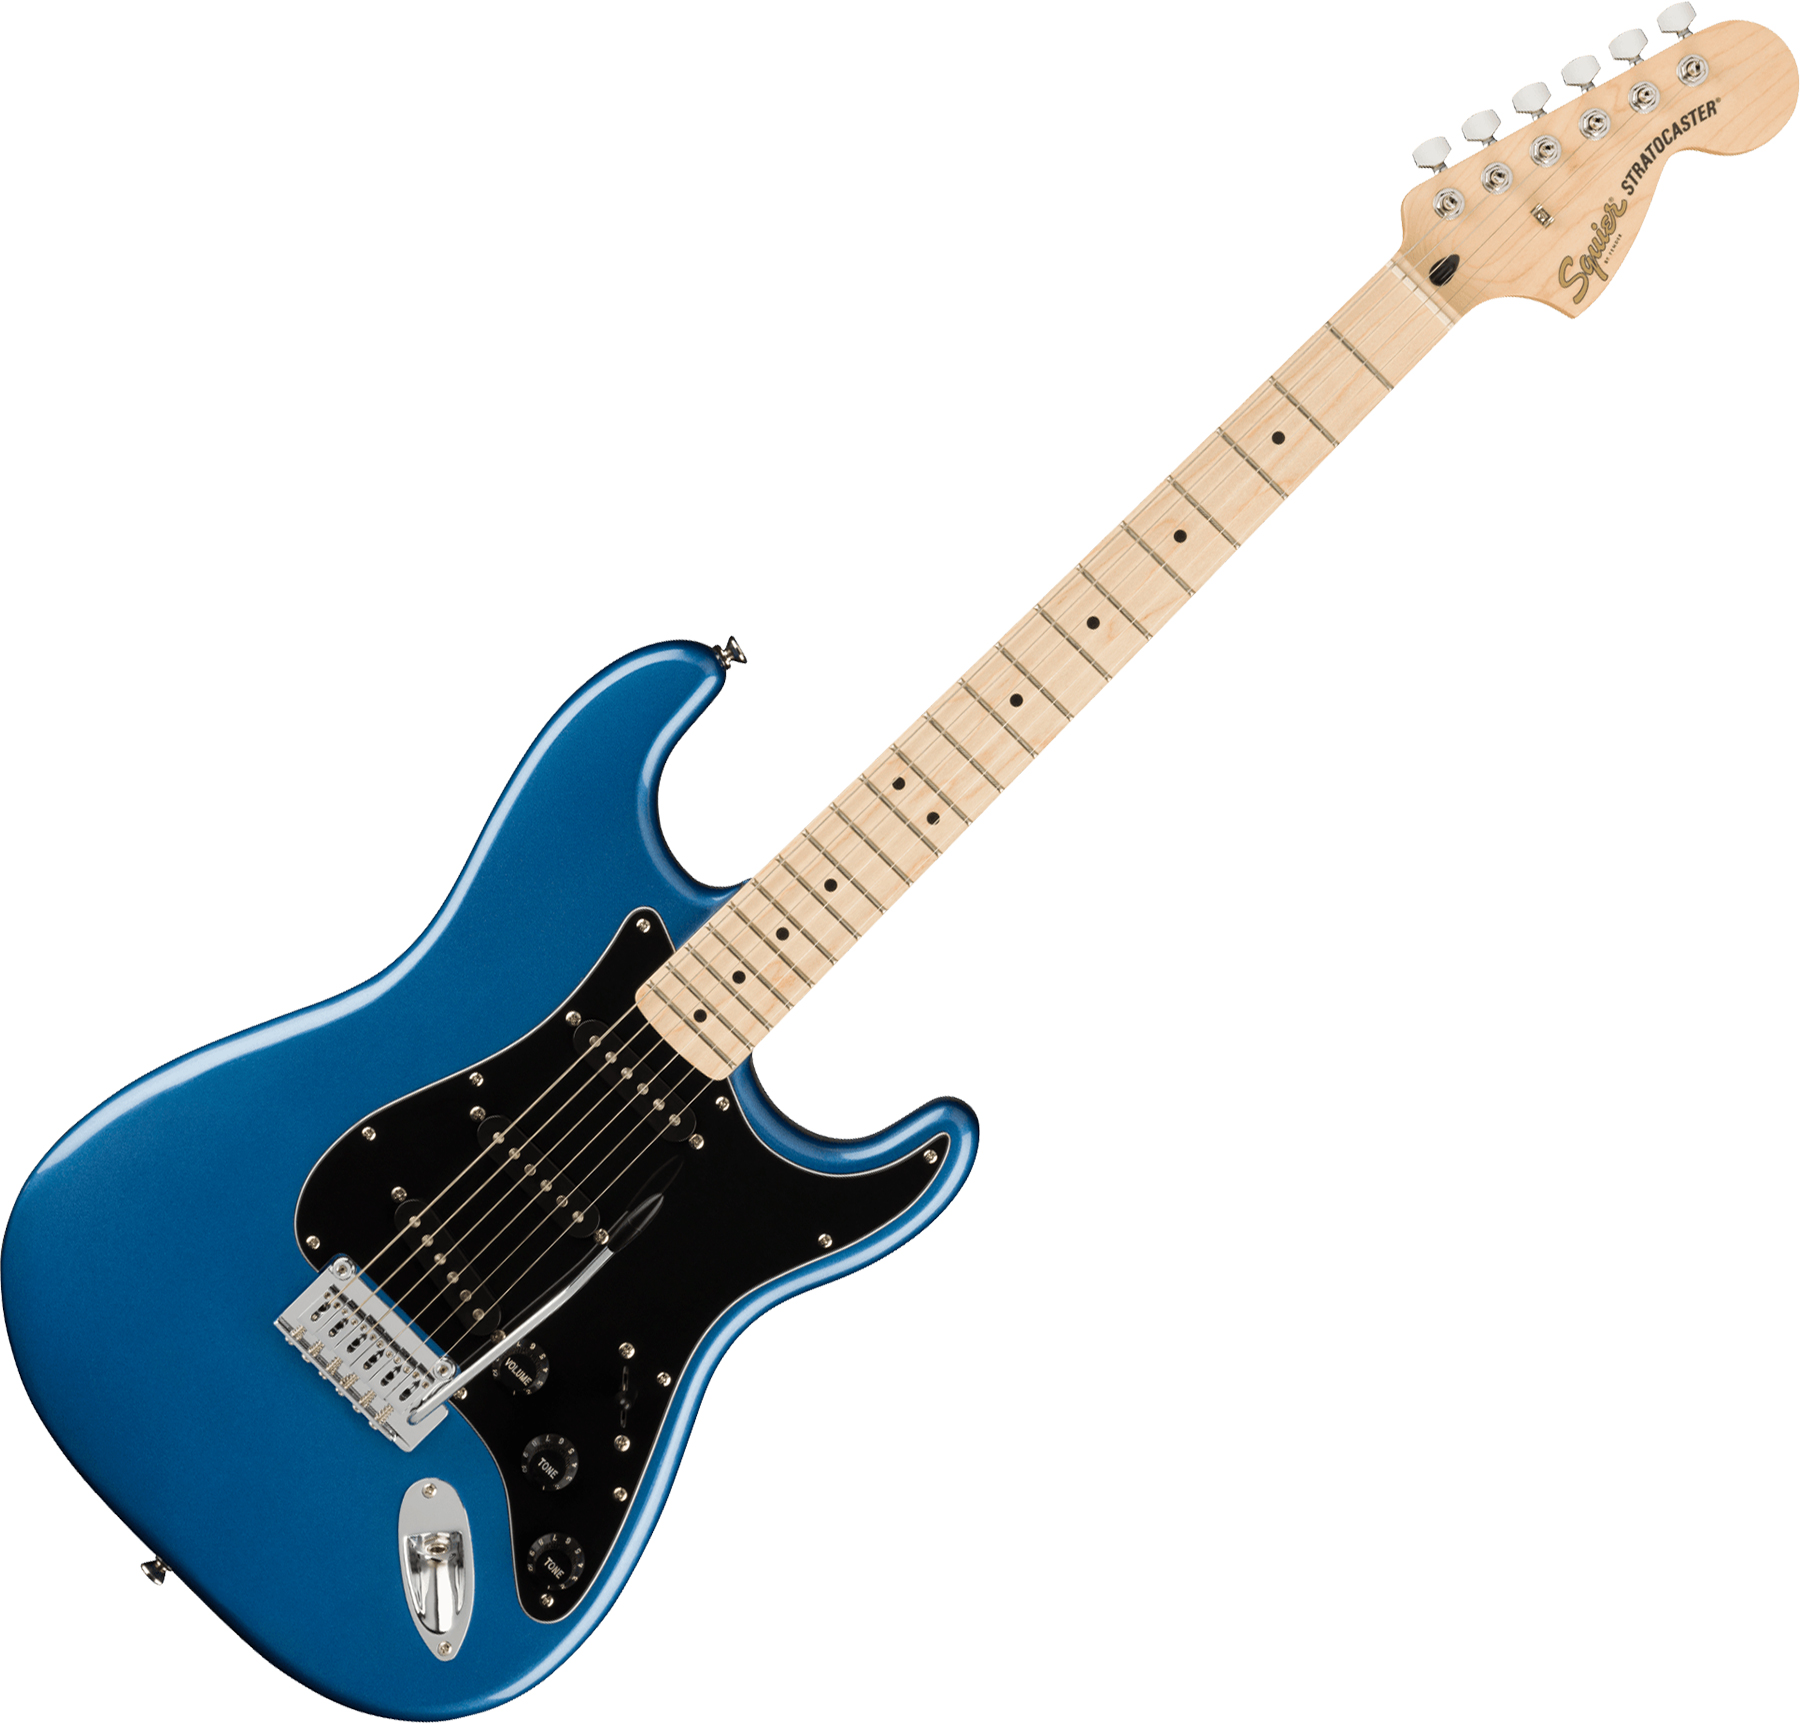 Squier Affinity Series Stratocaster 2021 (MN) - lake placid blue Solid body electric  guitar blue